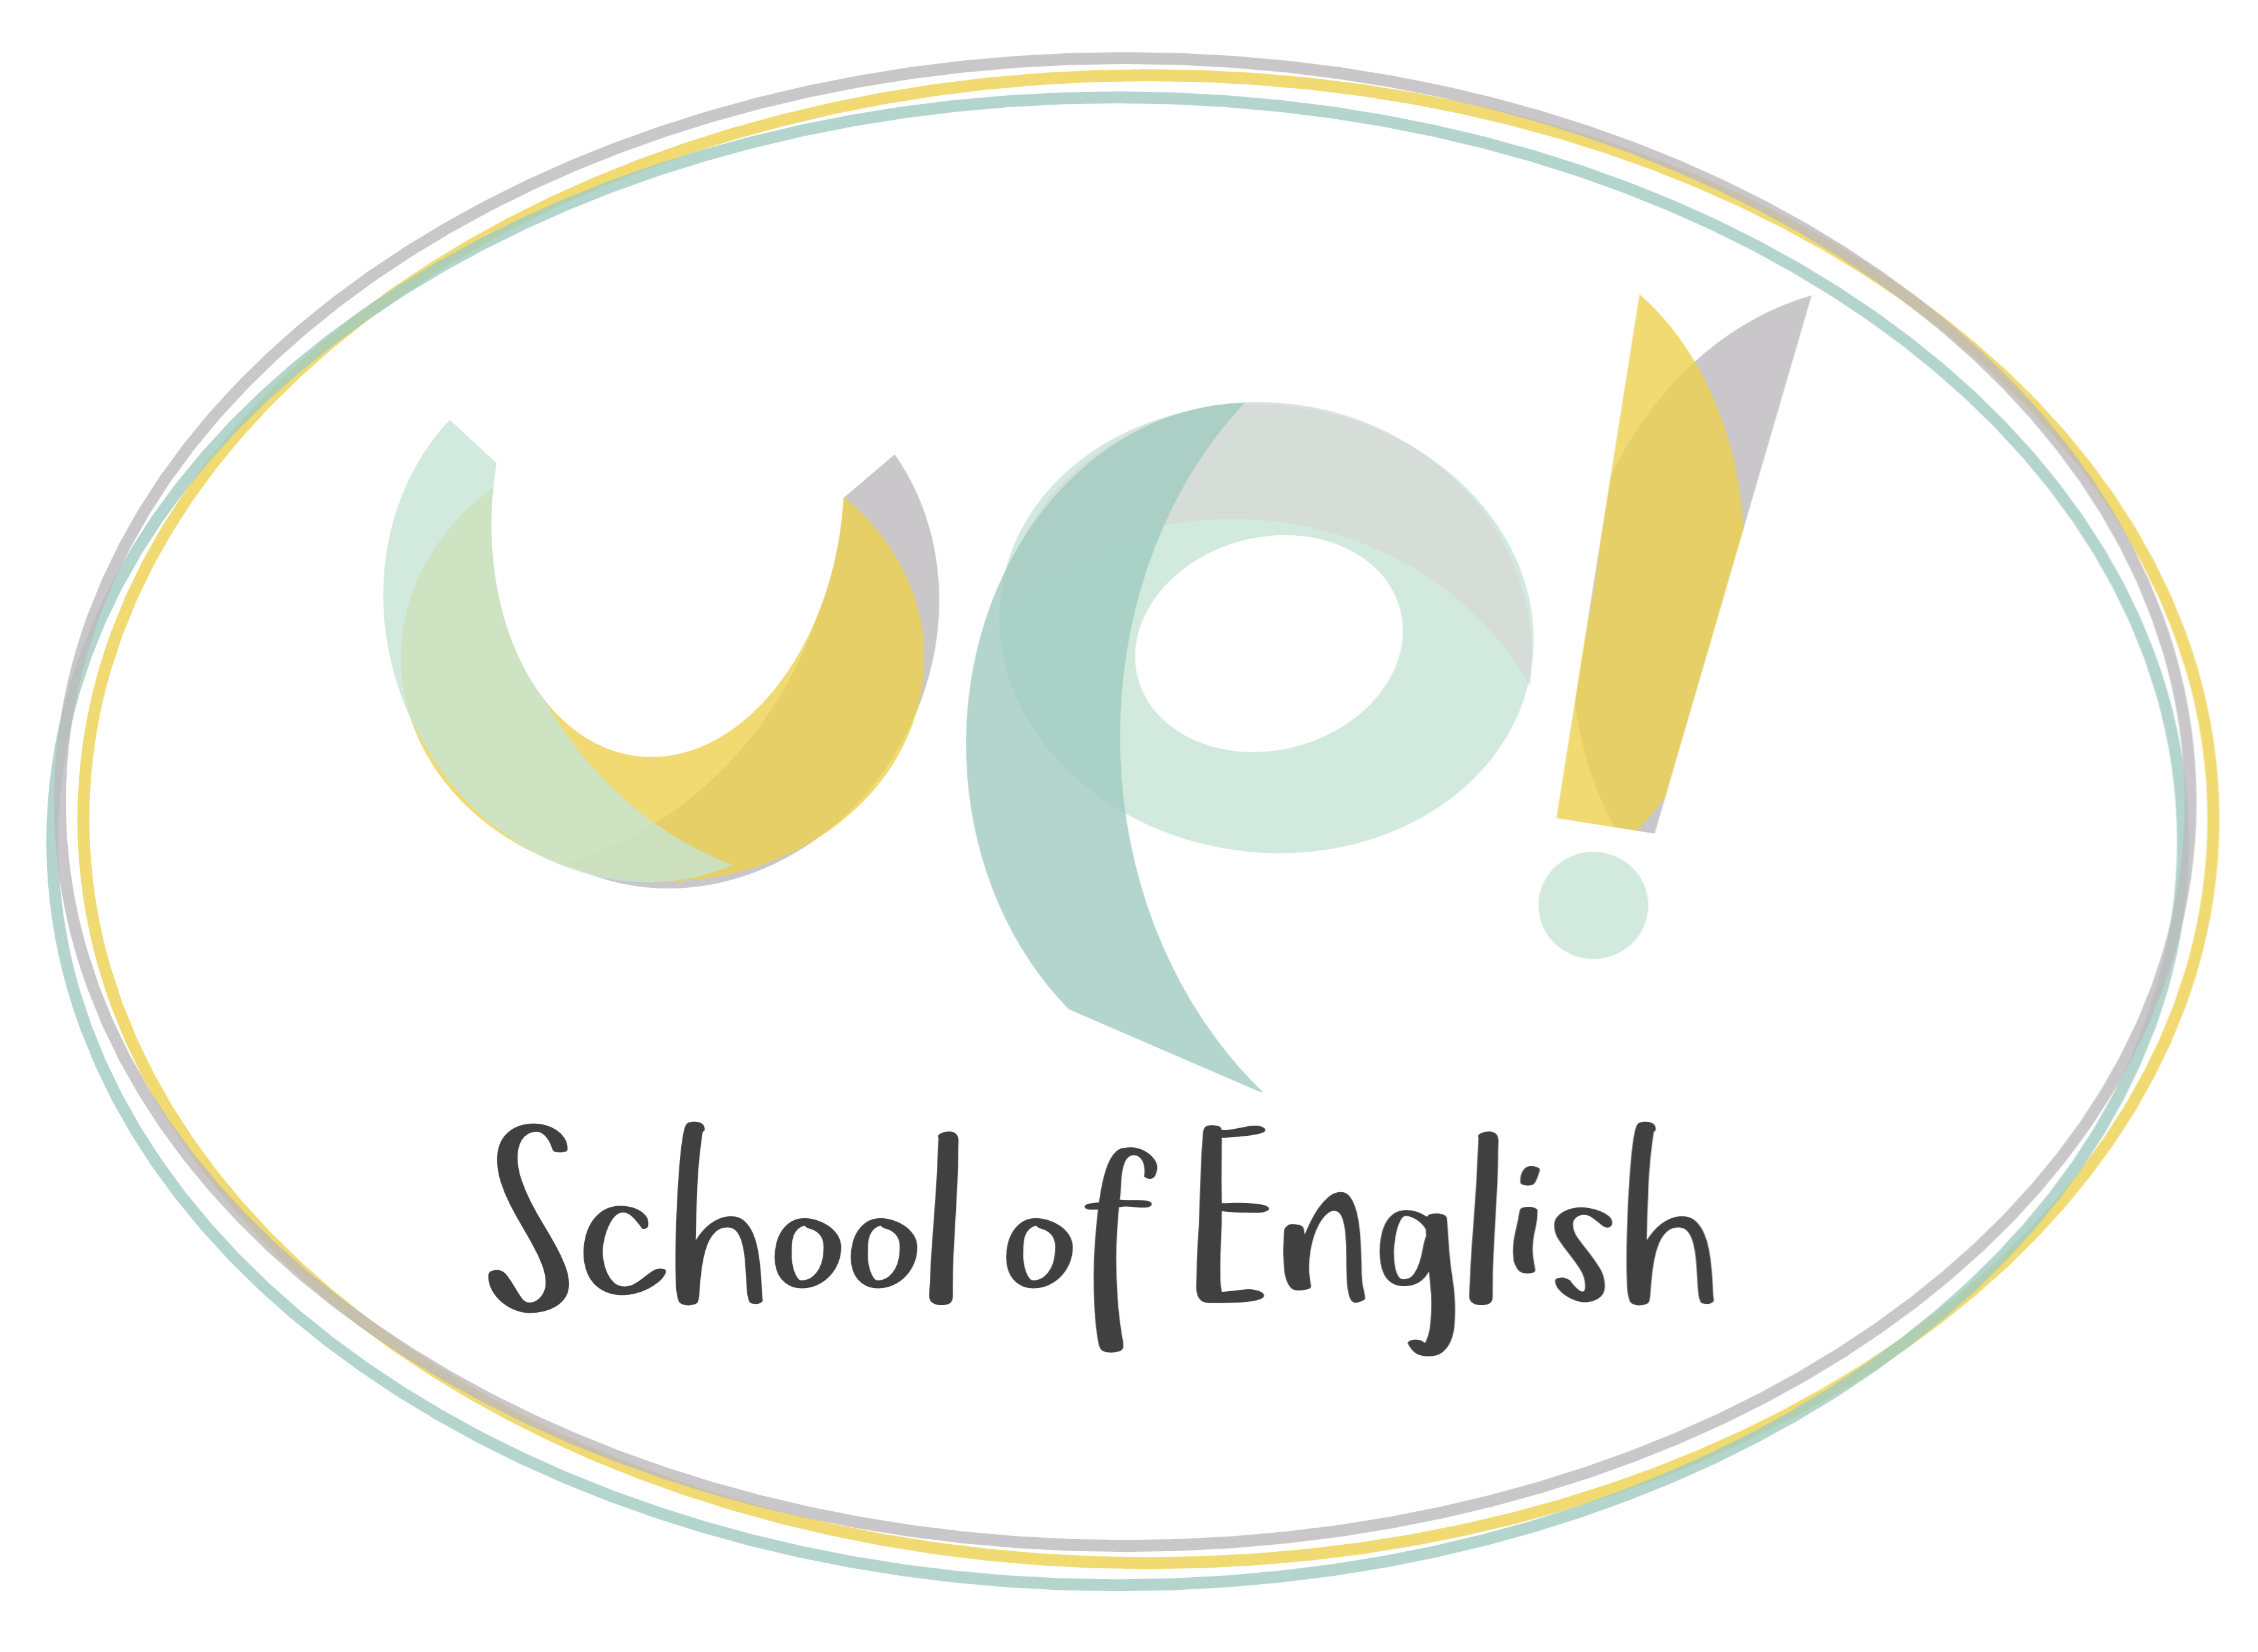 UP School of English Alzira